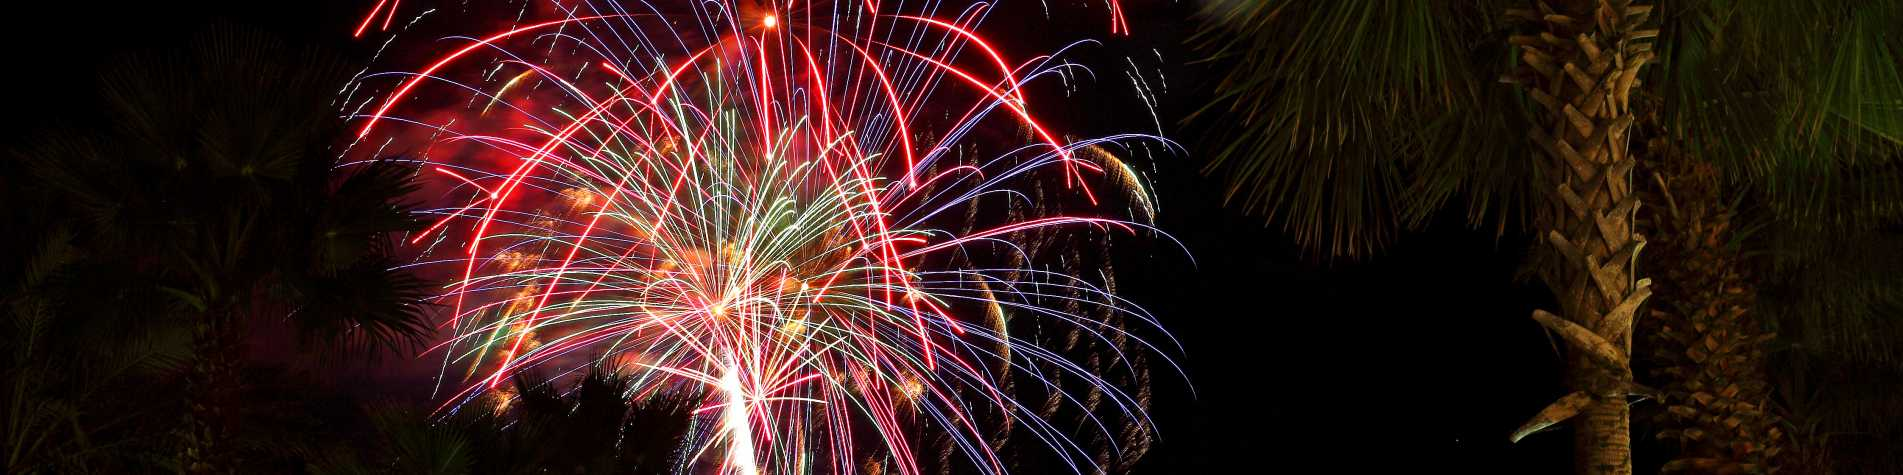 Ring In 2021 With New Year S Eve Fireworks In Panama City Beach